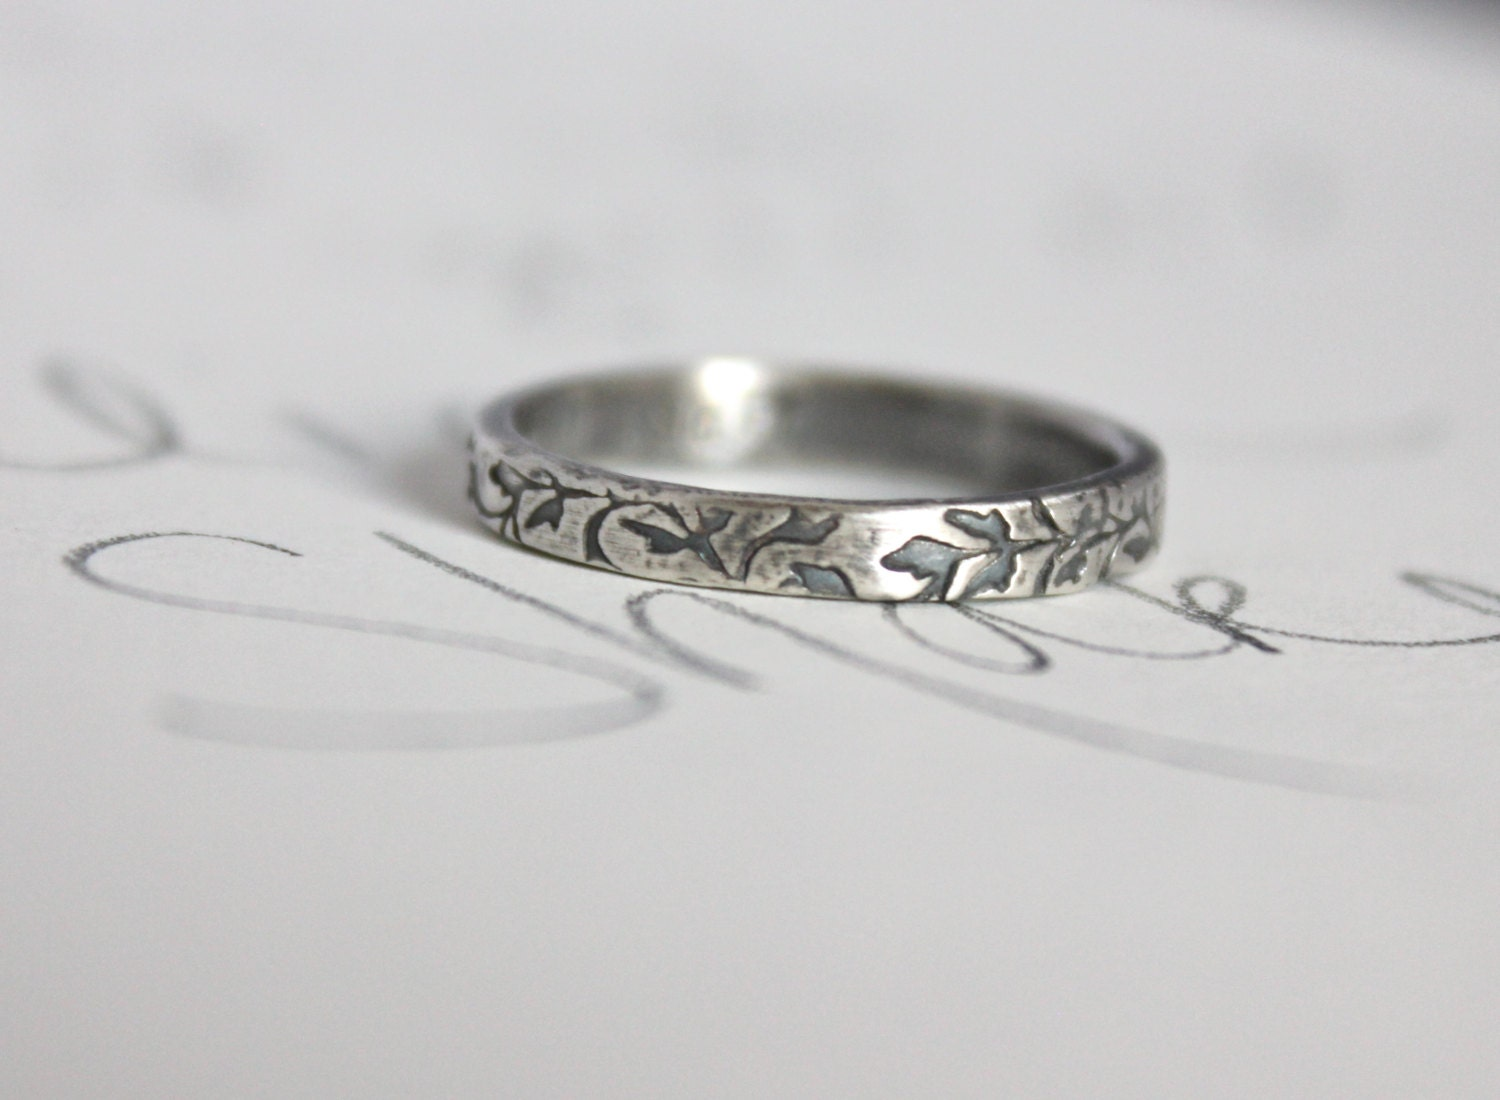 purity ring . true love will wait ring . vine textured silver